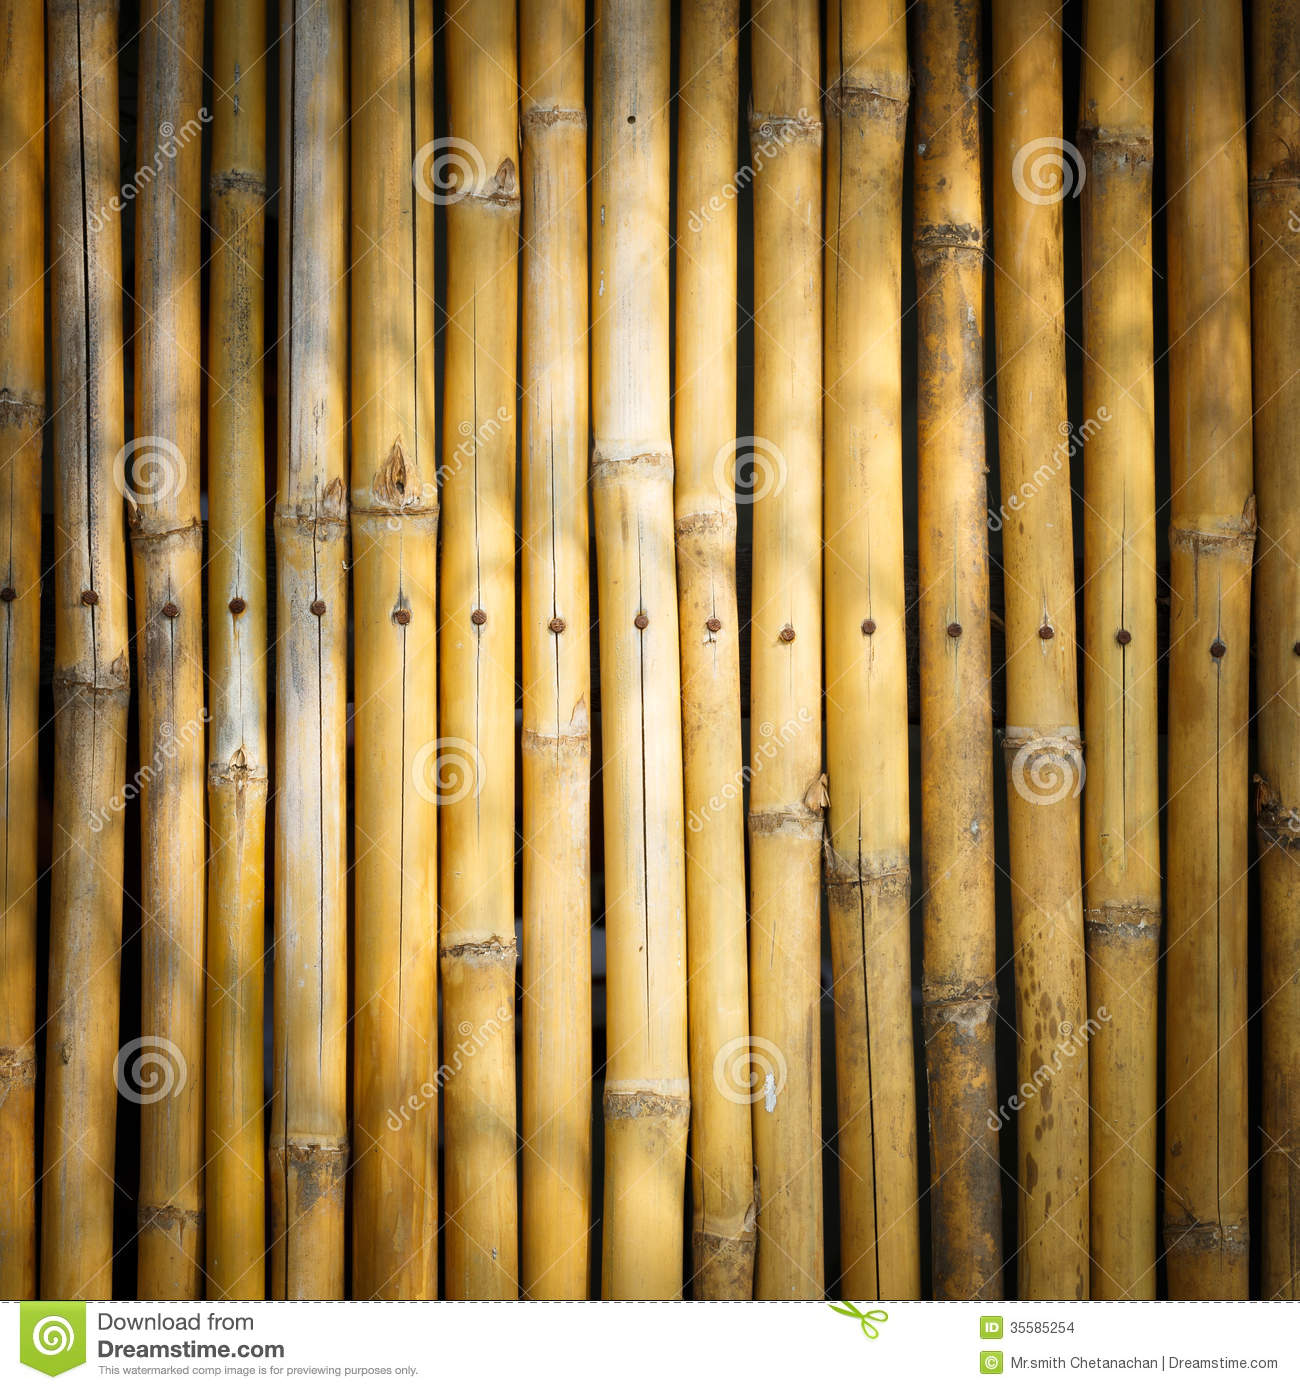 Bamboo Stcik People ~ Vignette style bamboo stick background stock images